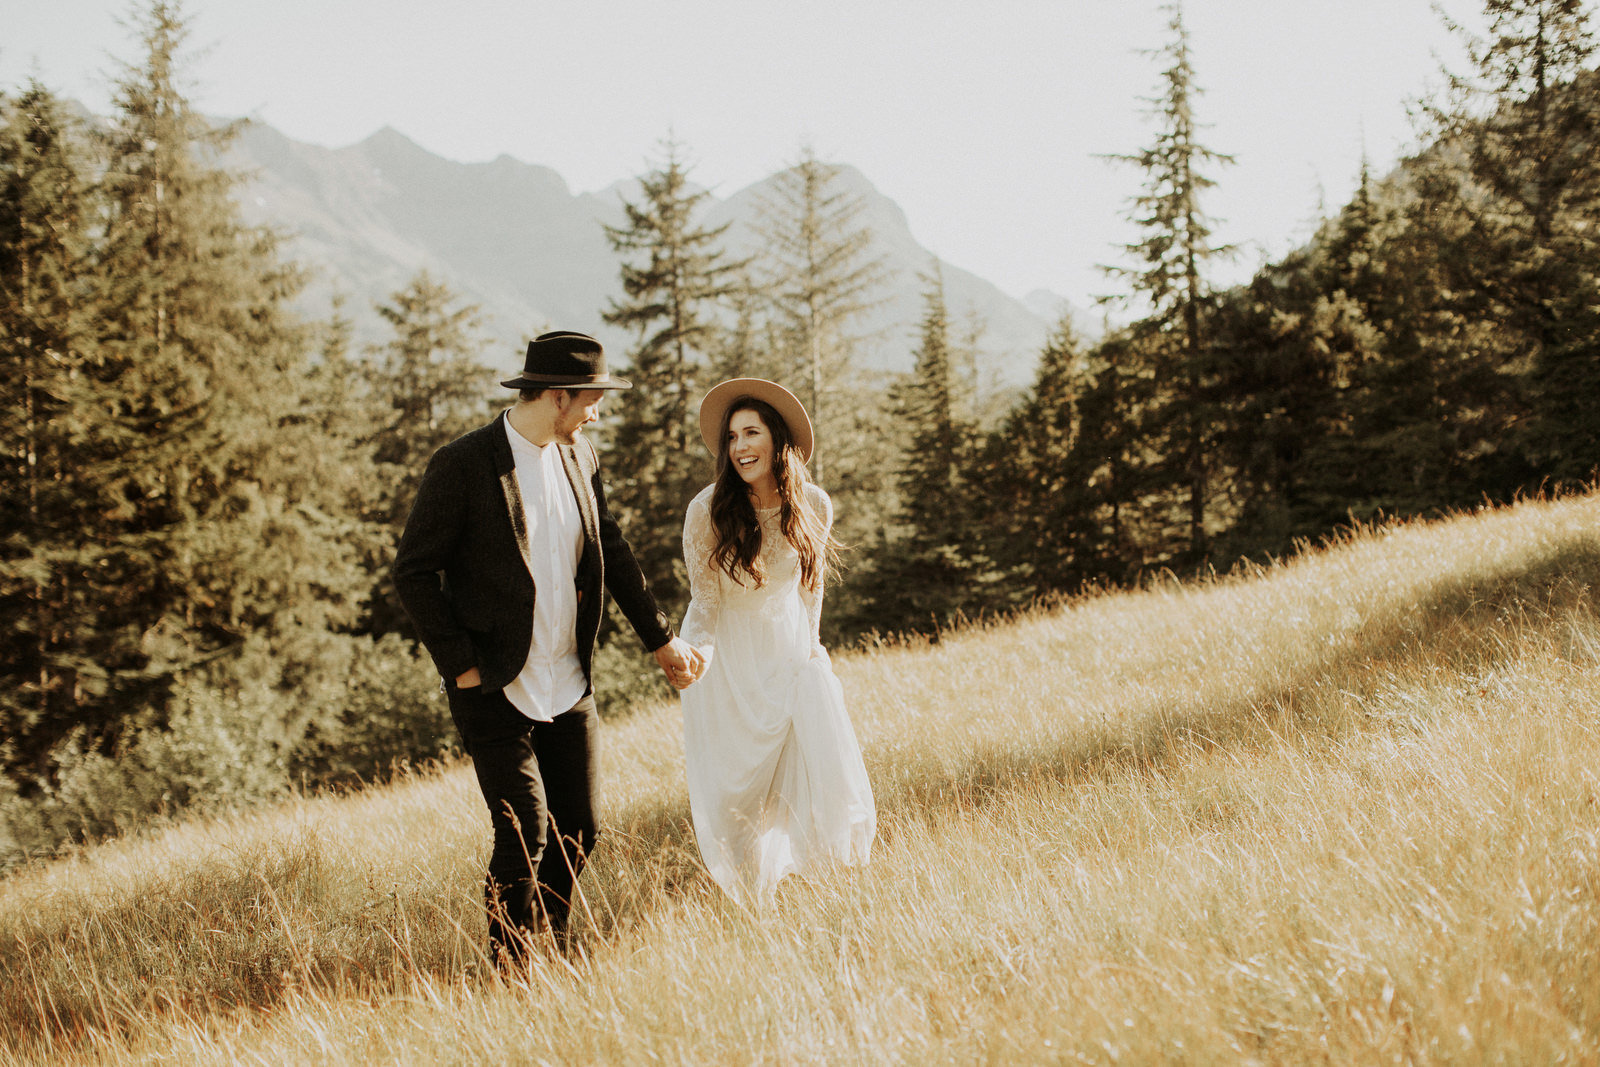 athena-and-camron-alaska-elopement-wedding-inspiration-india-earl-athena-grace-glacier-lagoon-wedding46